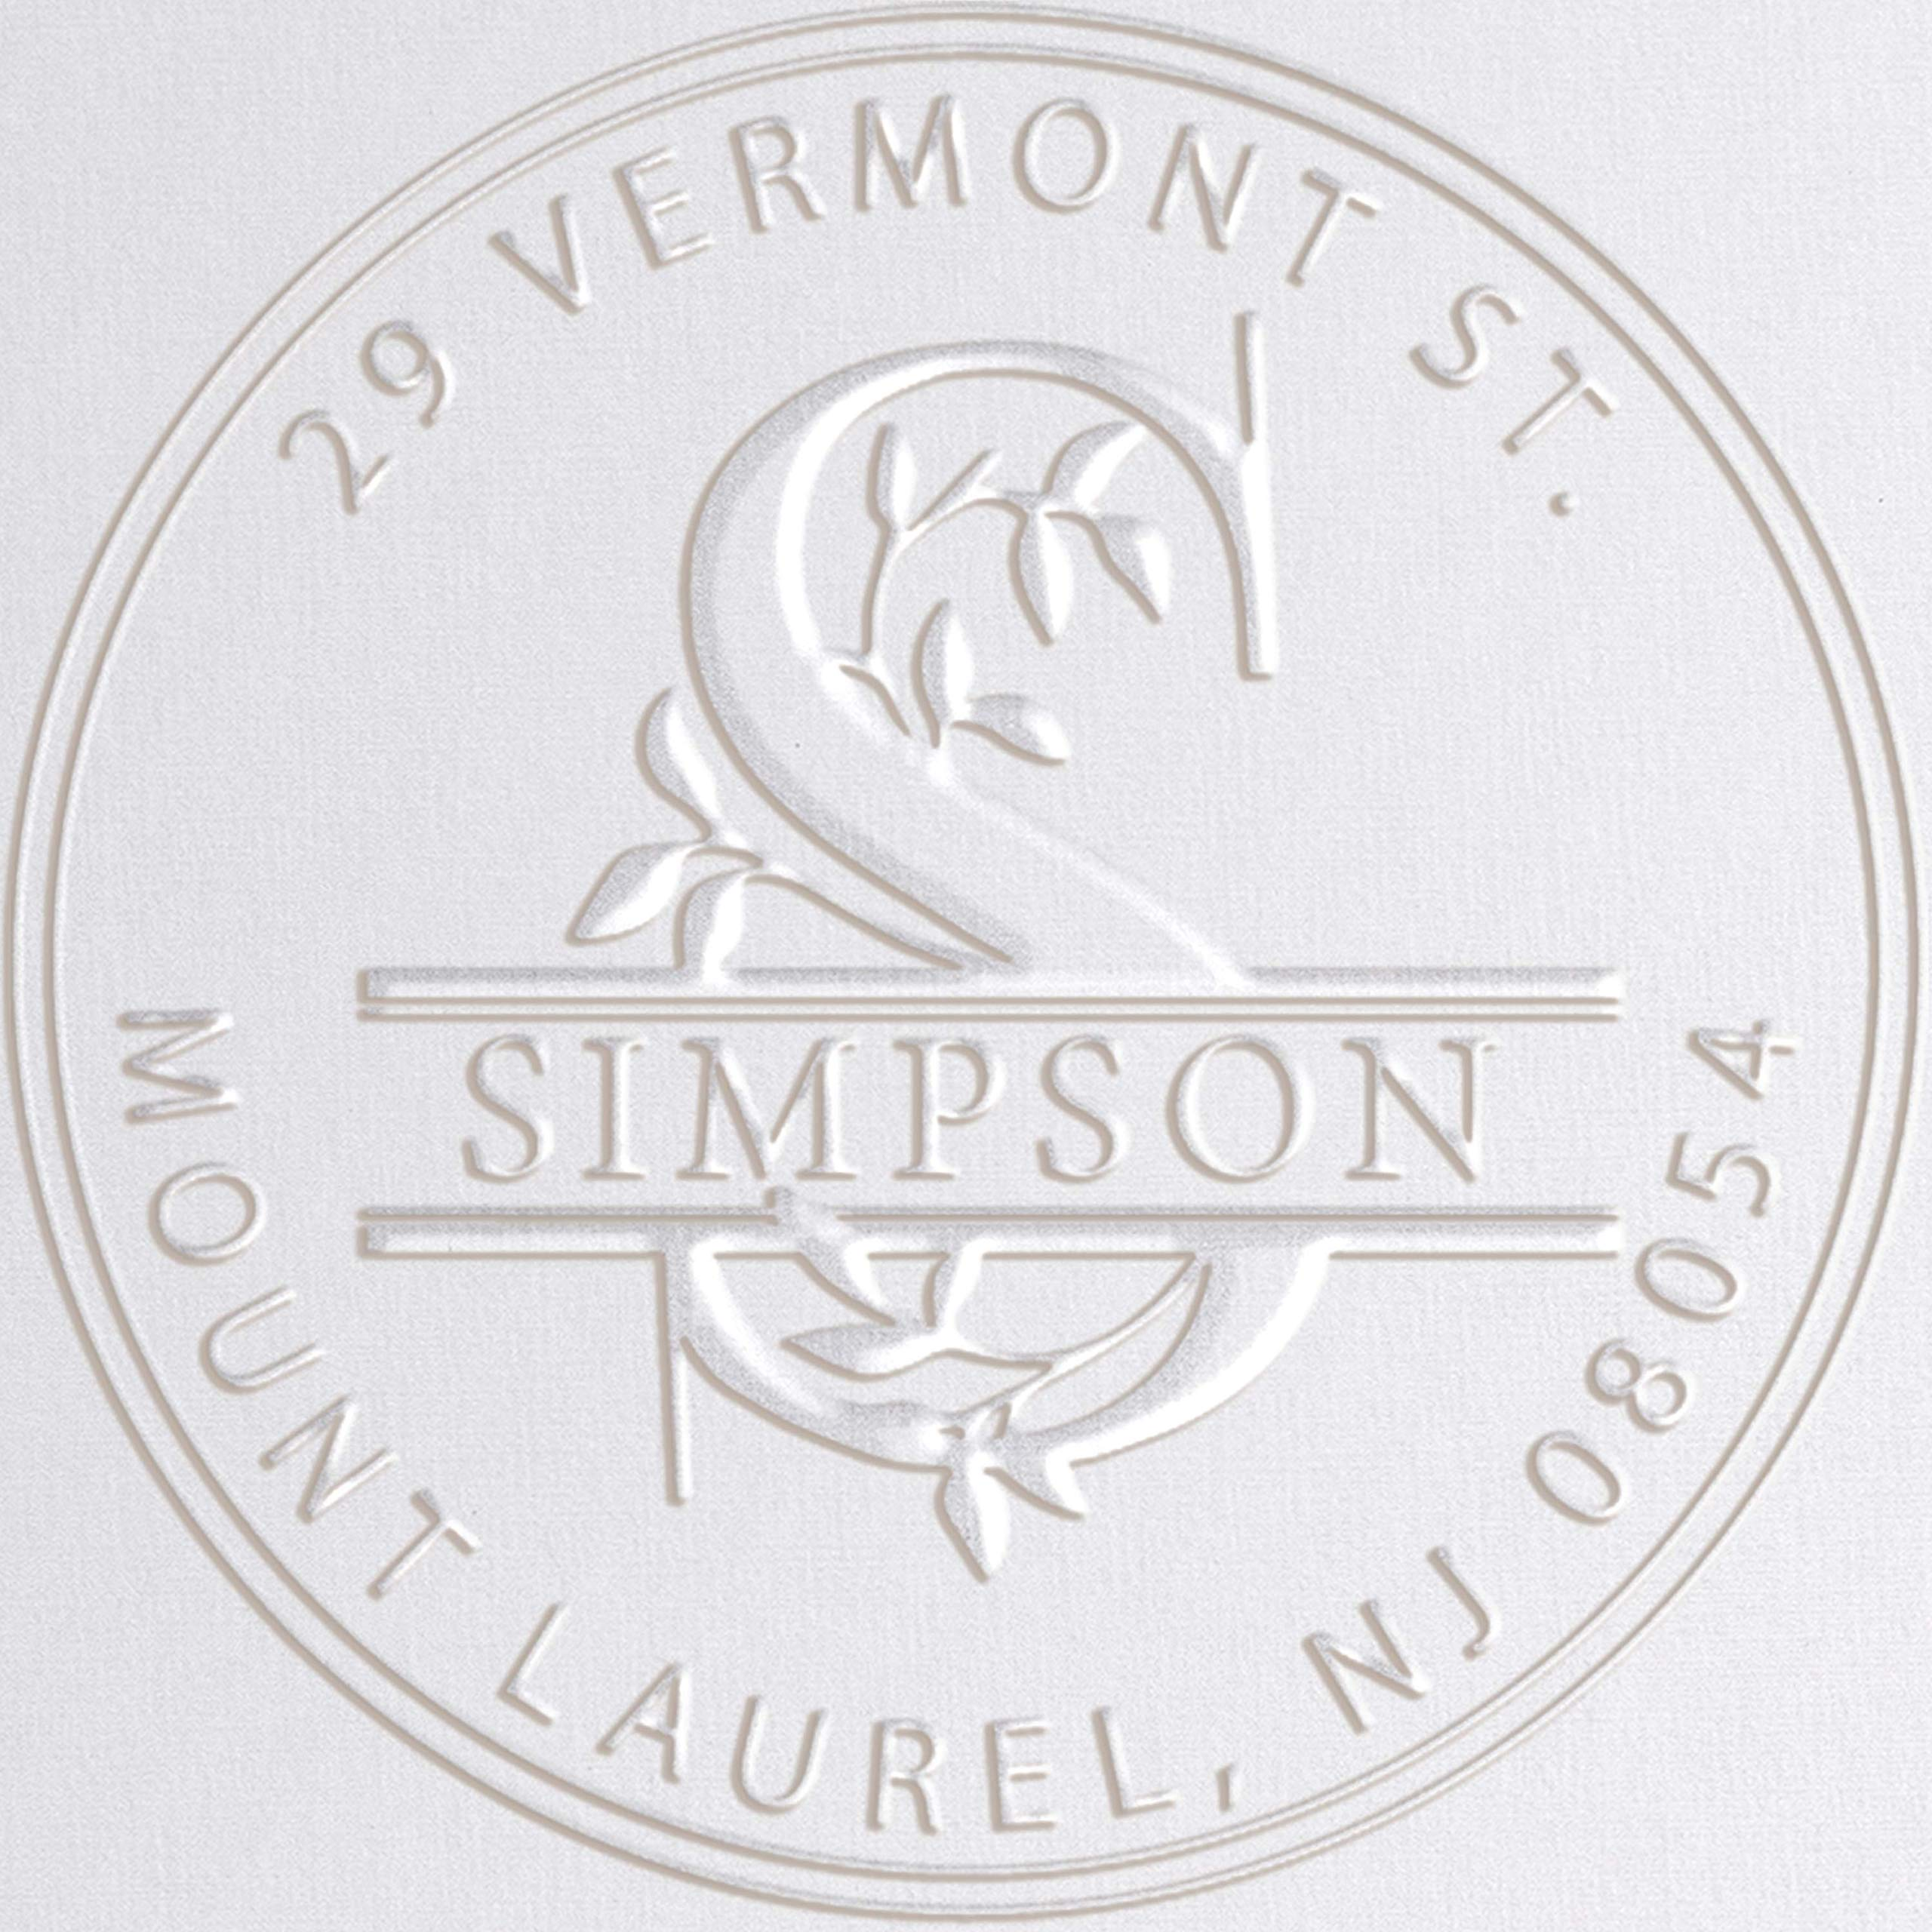 Monogram Address Embosser Seal Stamp Personalized Customized Monogram Wedding Invitations 1 x 5/8'' by Pickled Stamps